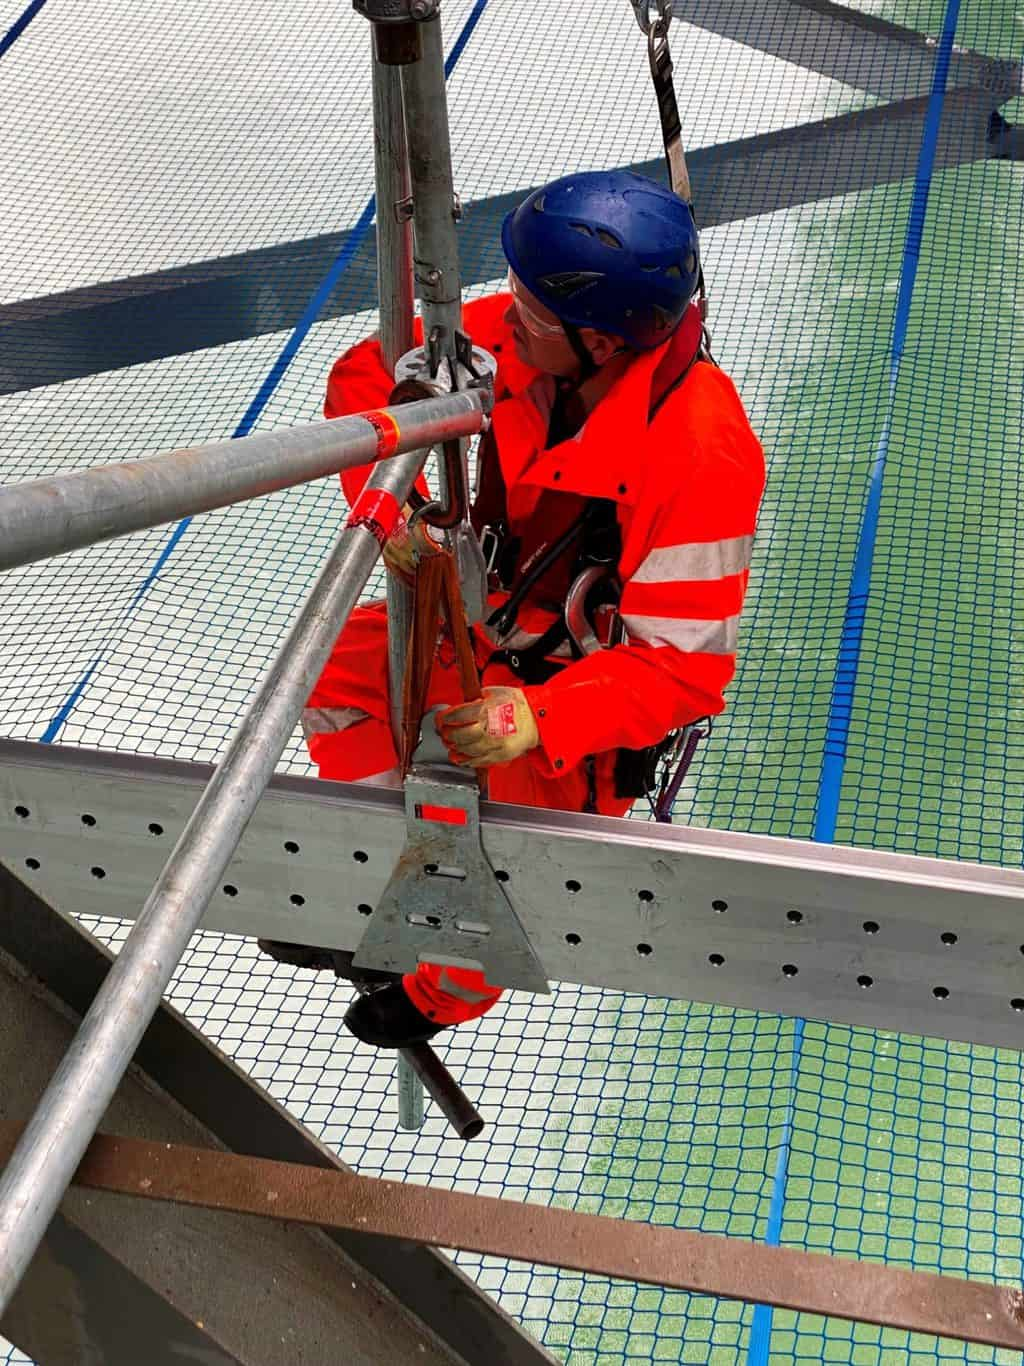 Working on the Forth Road Bridge I-Scaff Access Solutions Ltd have installed the UK's largest suspended scaffold that uses Layher's cutting edge'FlexBeam'.